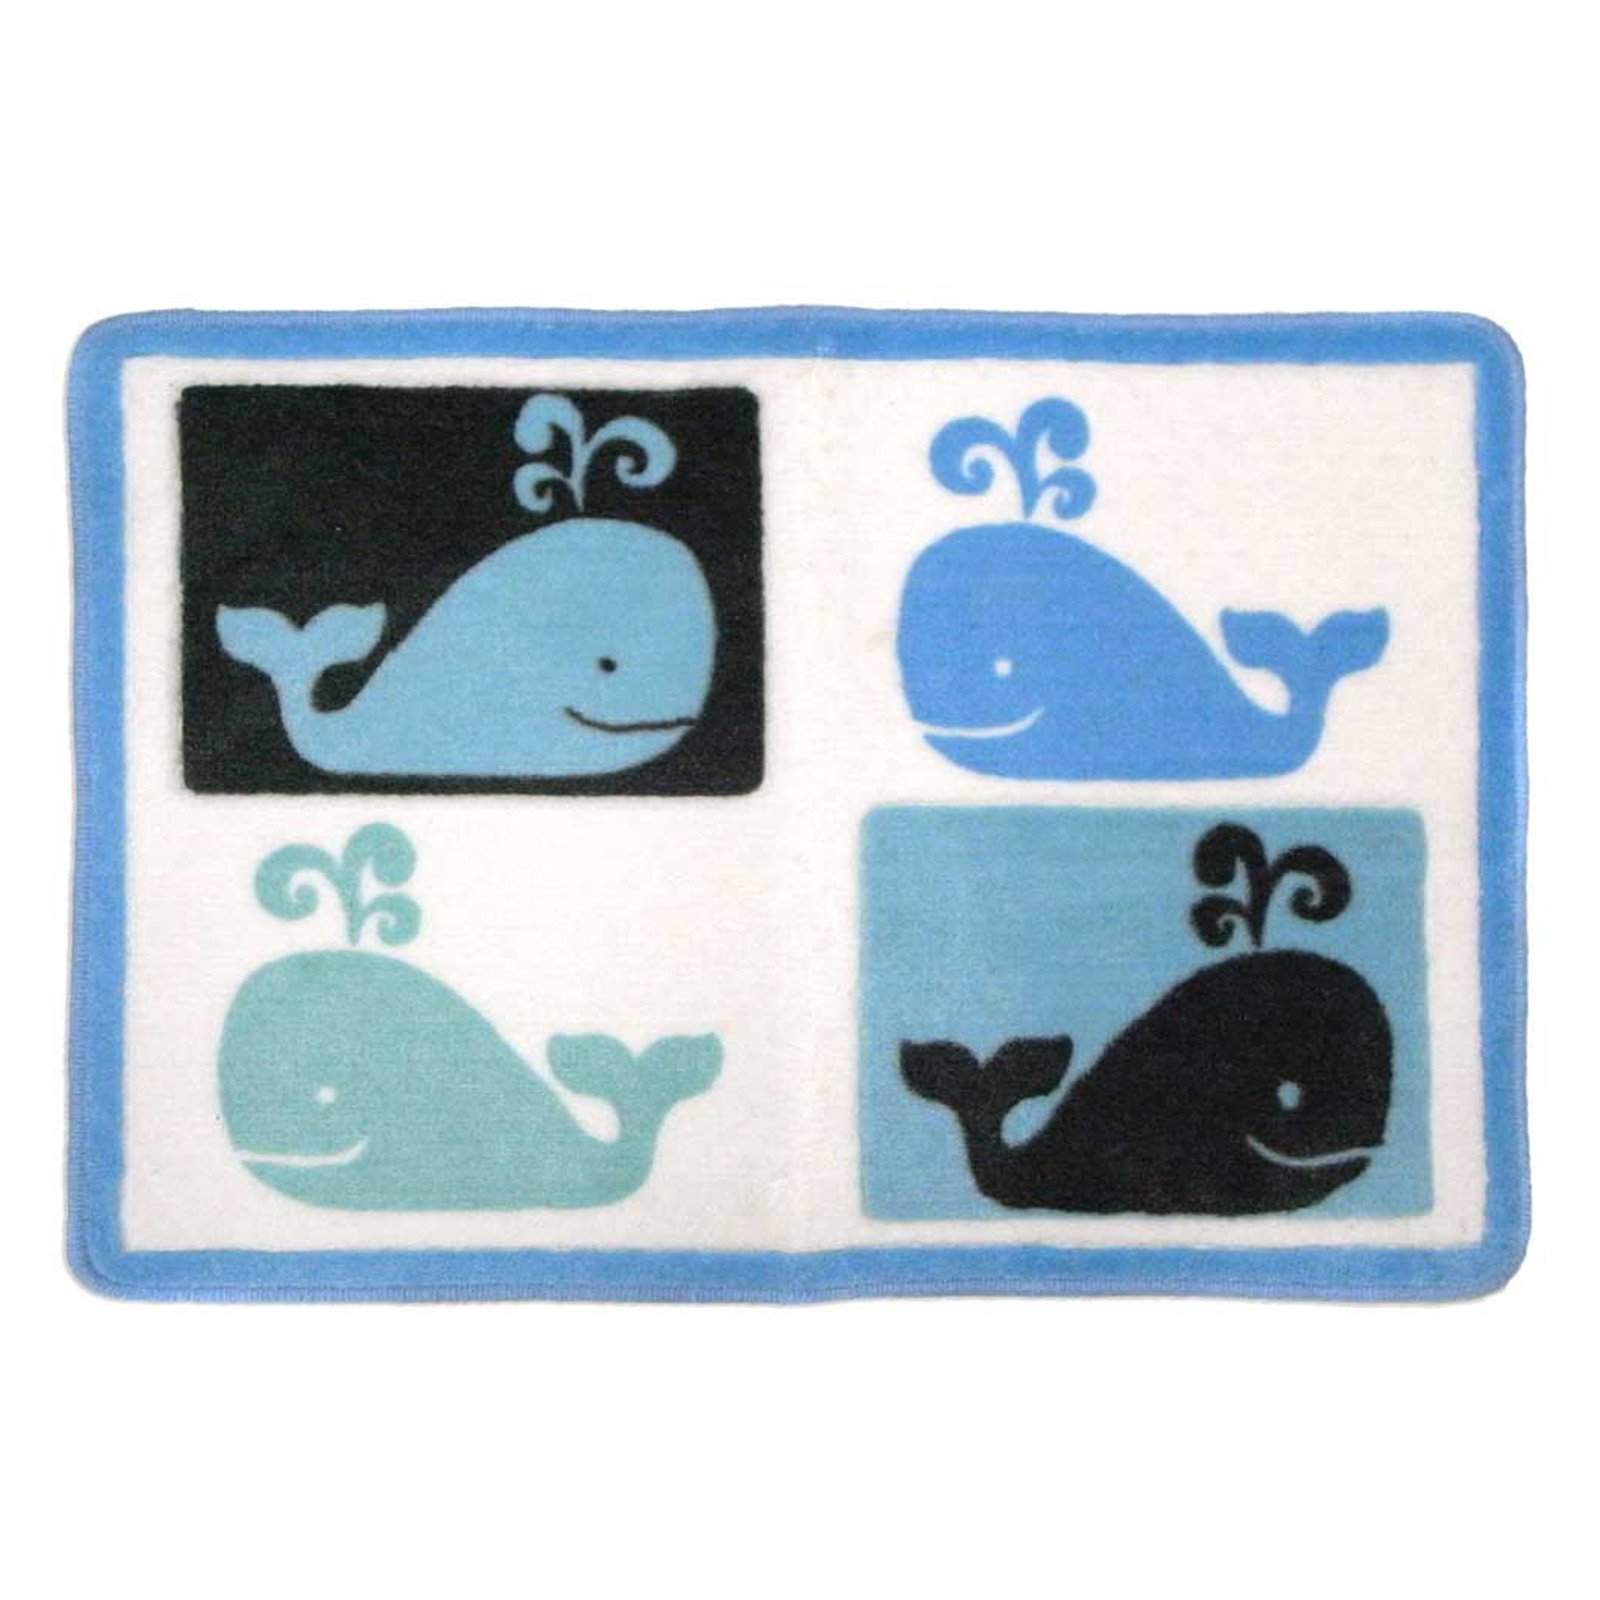 Allure Whale Watch Bath Rug